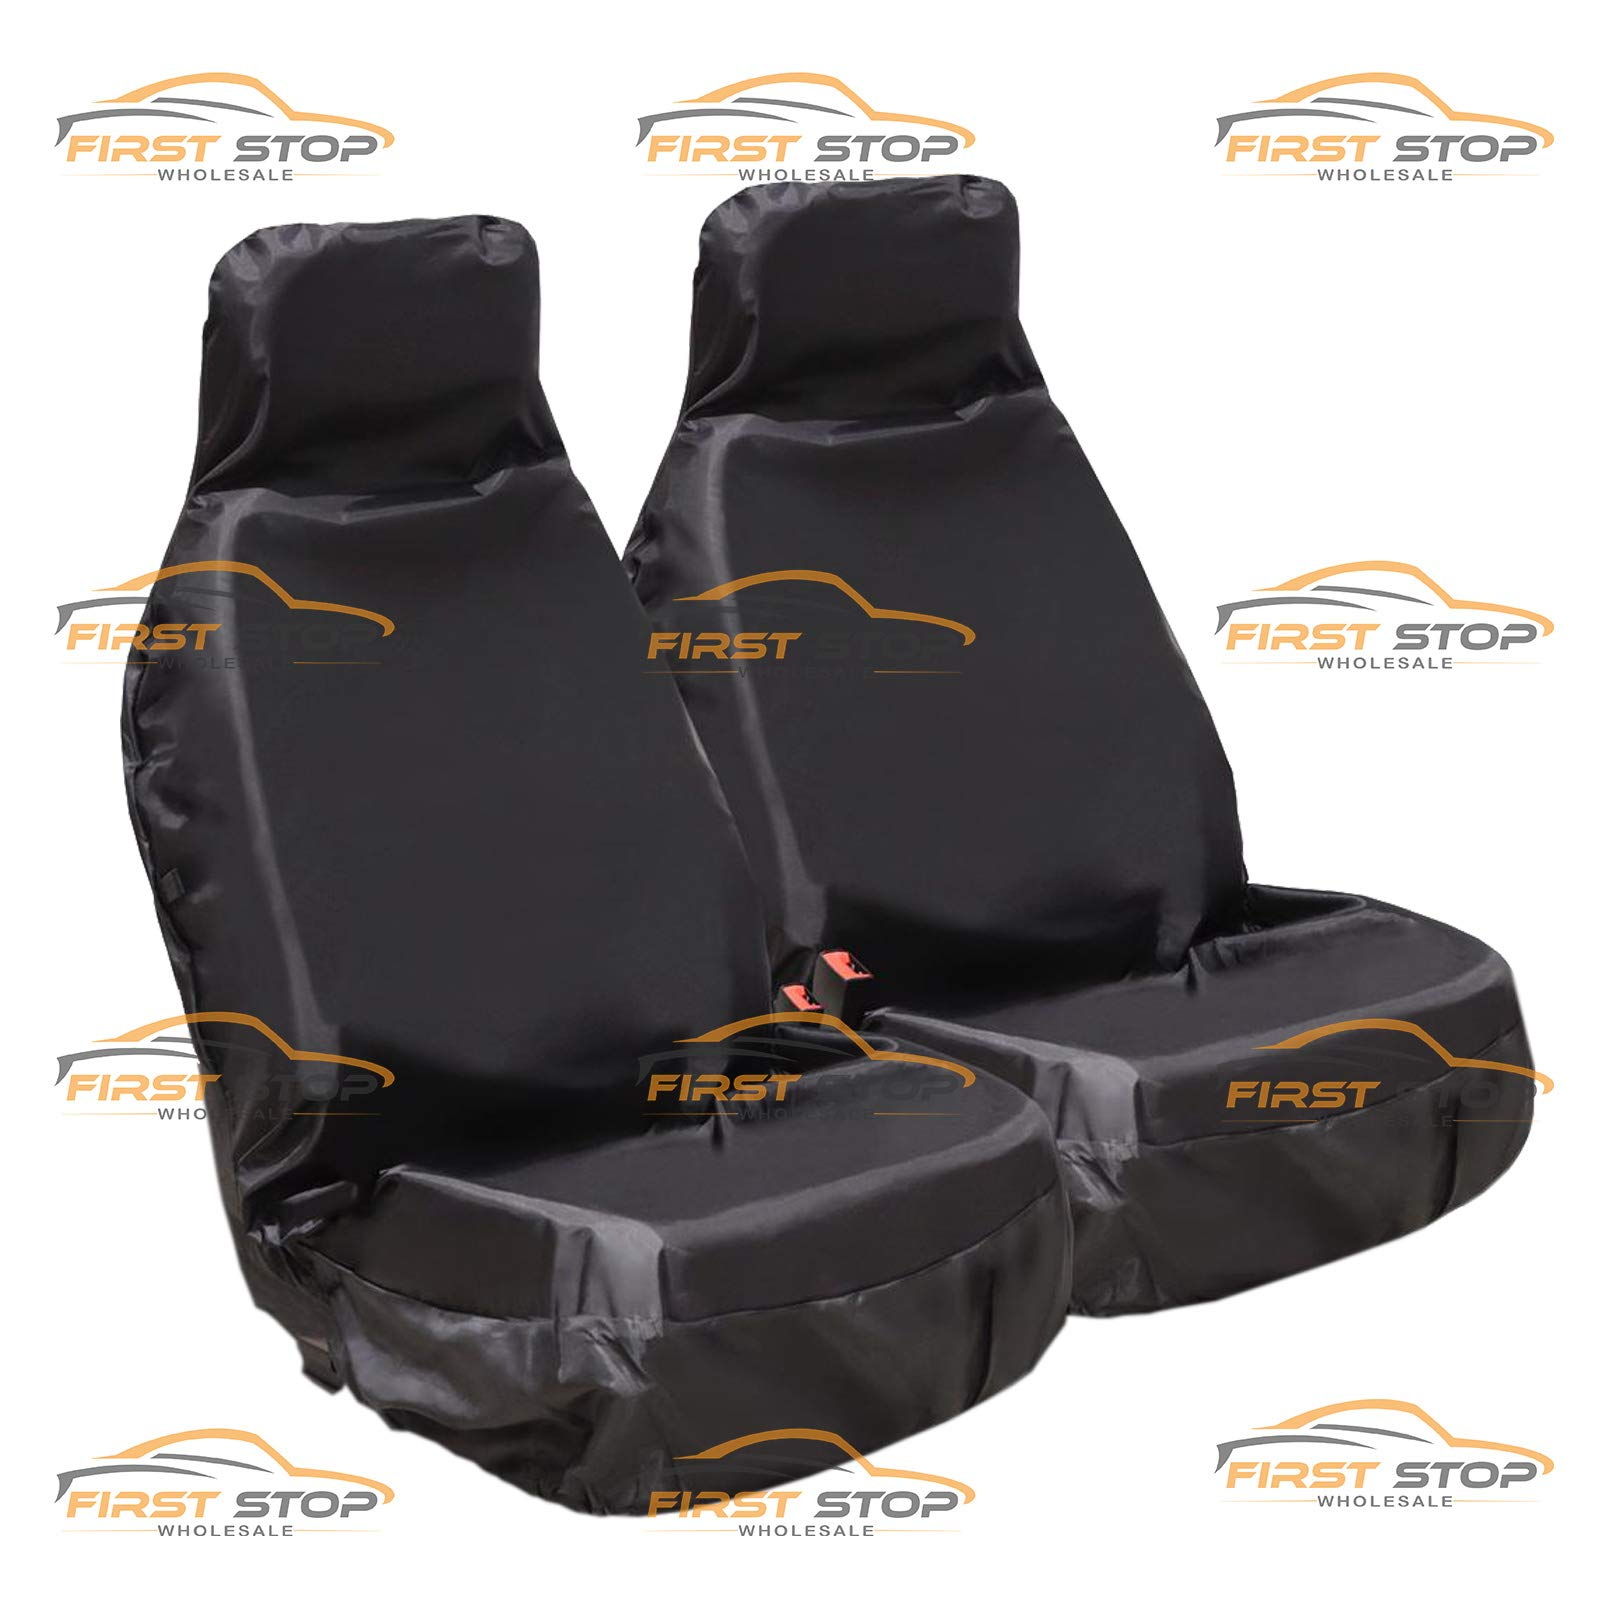 Outlander Galant Space Runner ASK Lancer Mirage L200 GTO Colt ASX FSW Heavy Duty Waterproof Car Front Black Seat Covers 1+1 Black HD1+1BLACK24 Fits: 3000GT FTO Shogun Grandis Challenger